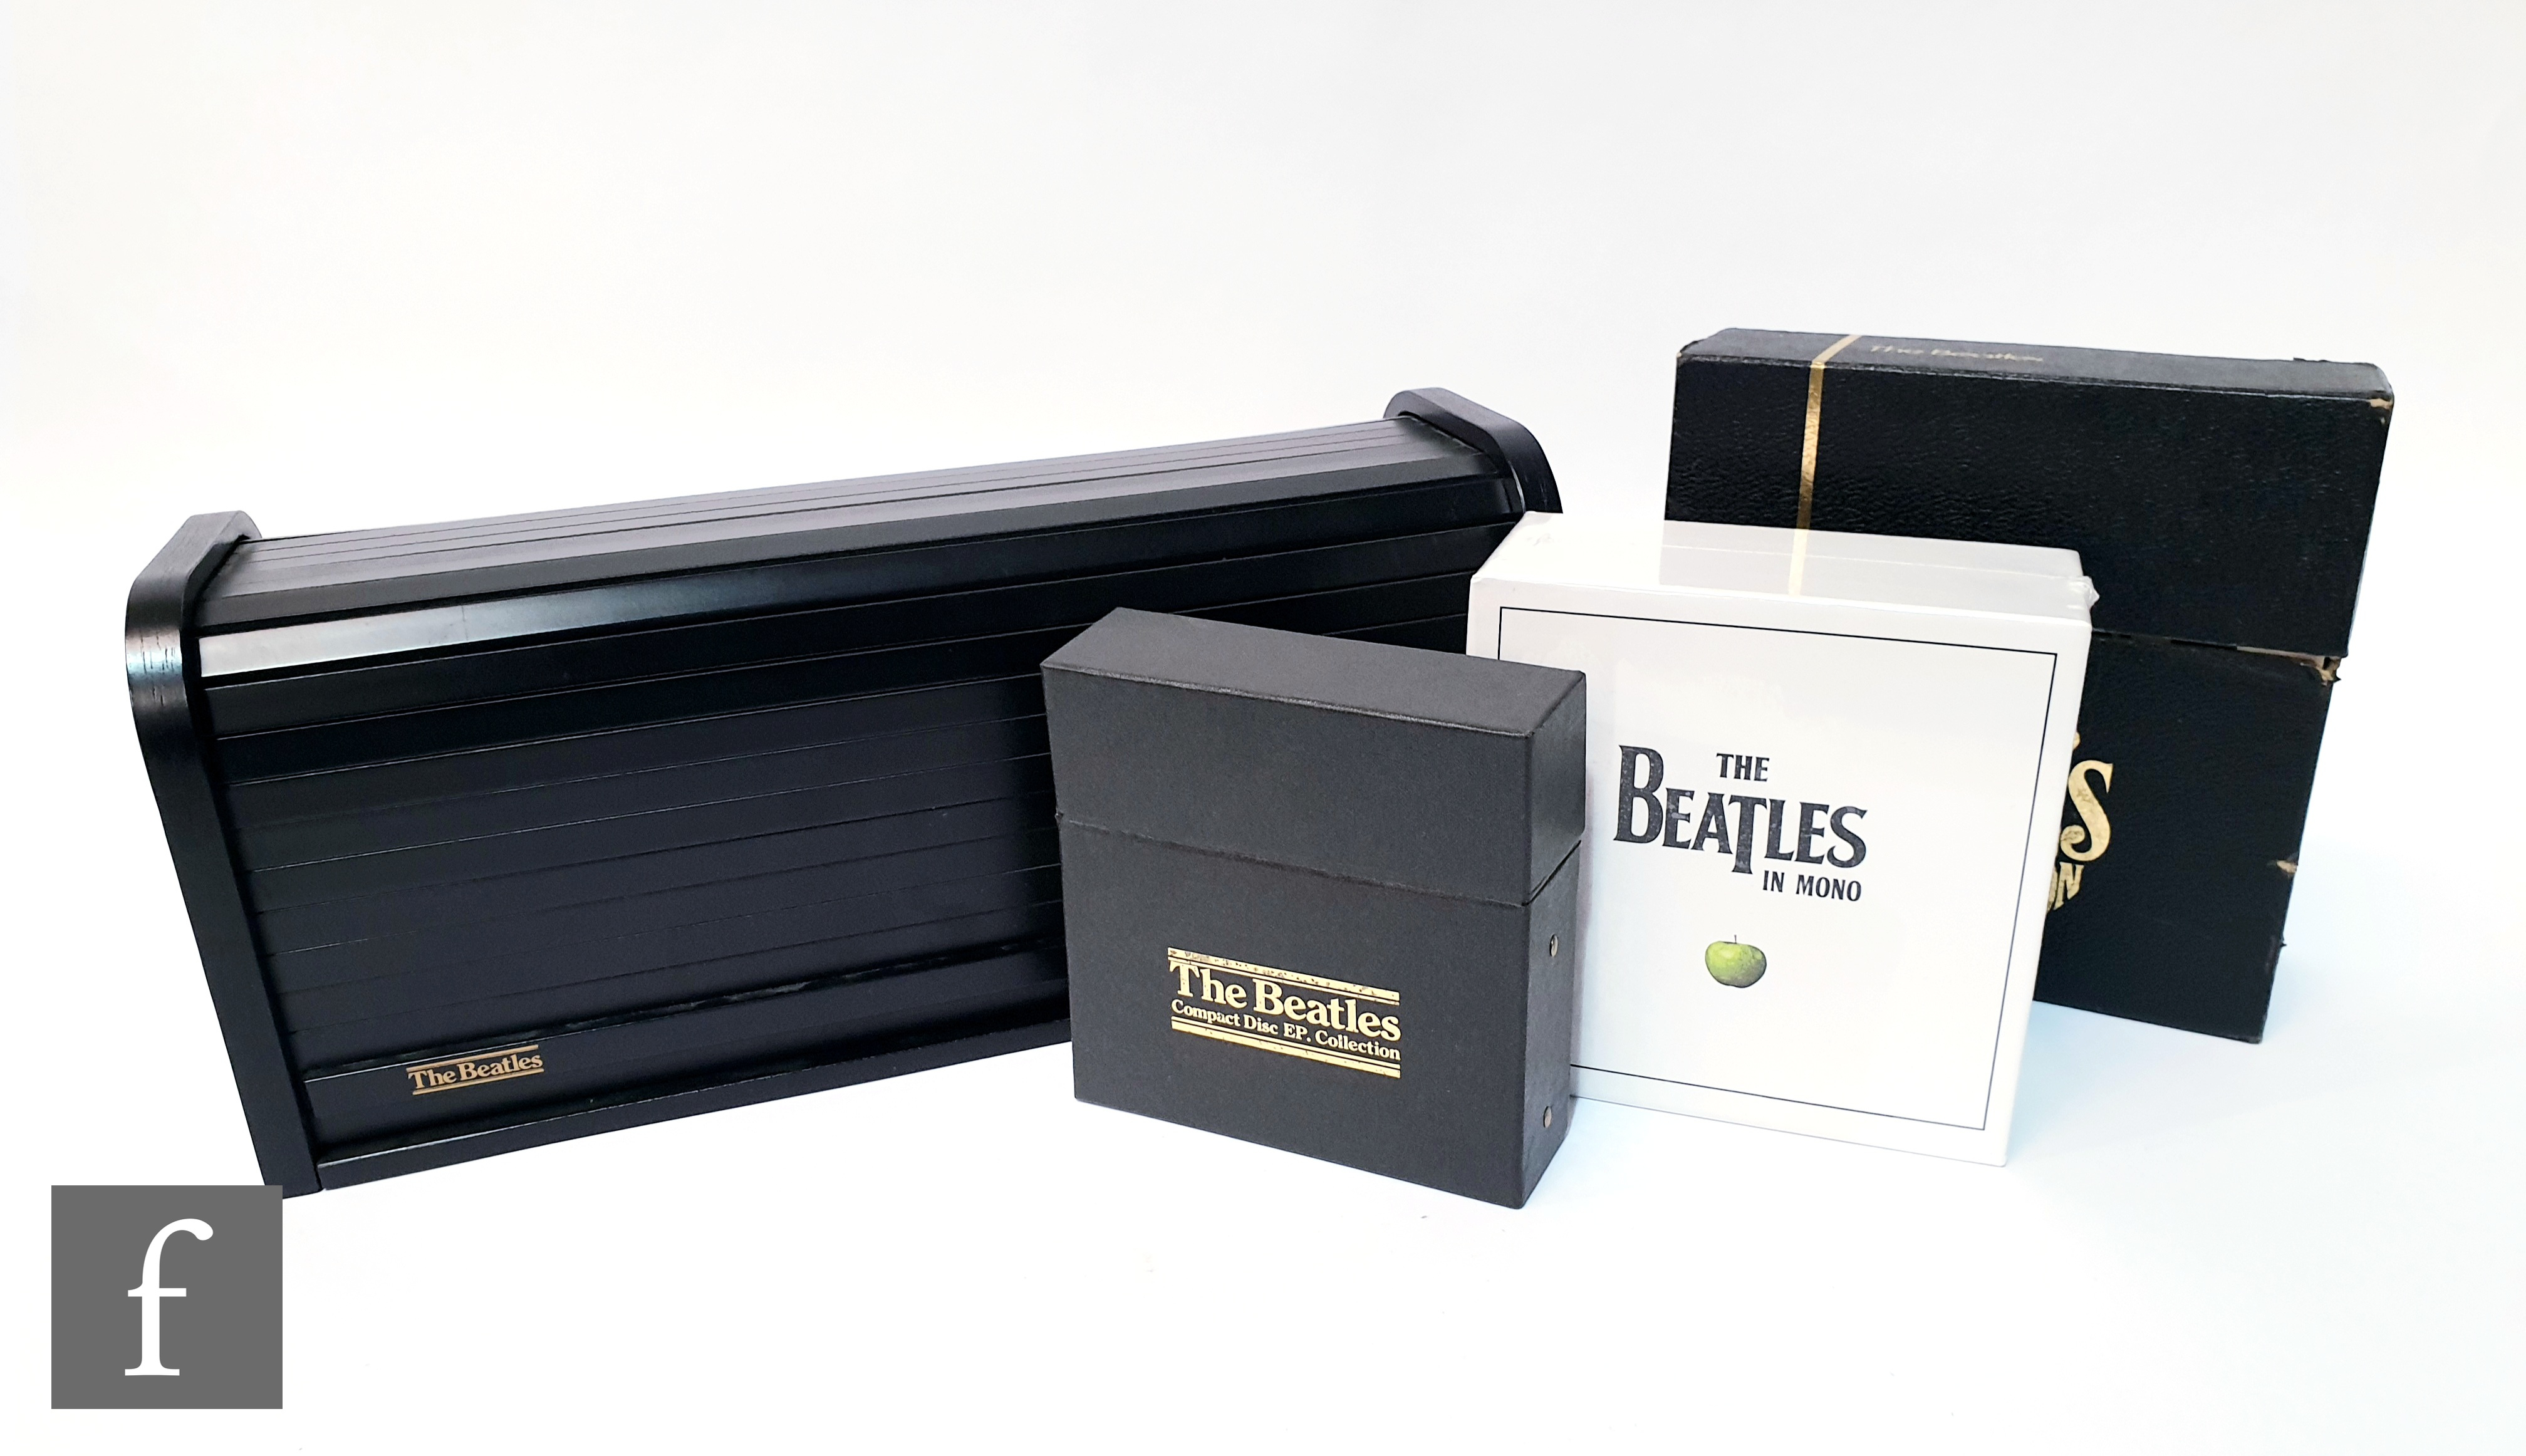 The Beatles 7 inch singles collection 'The Beatles Collection', 1962-70, comprising twenty four